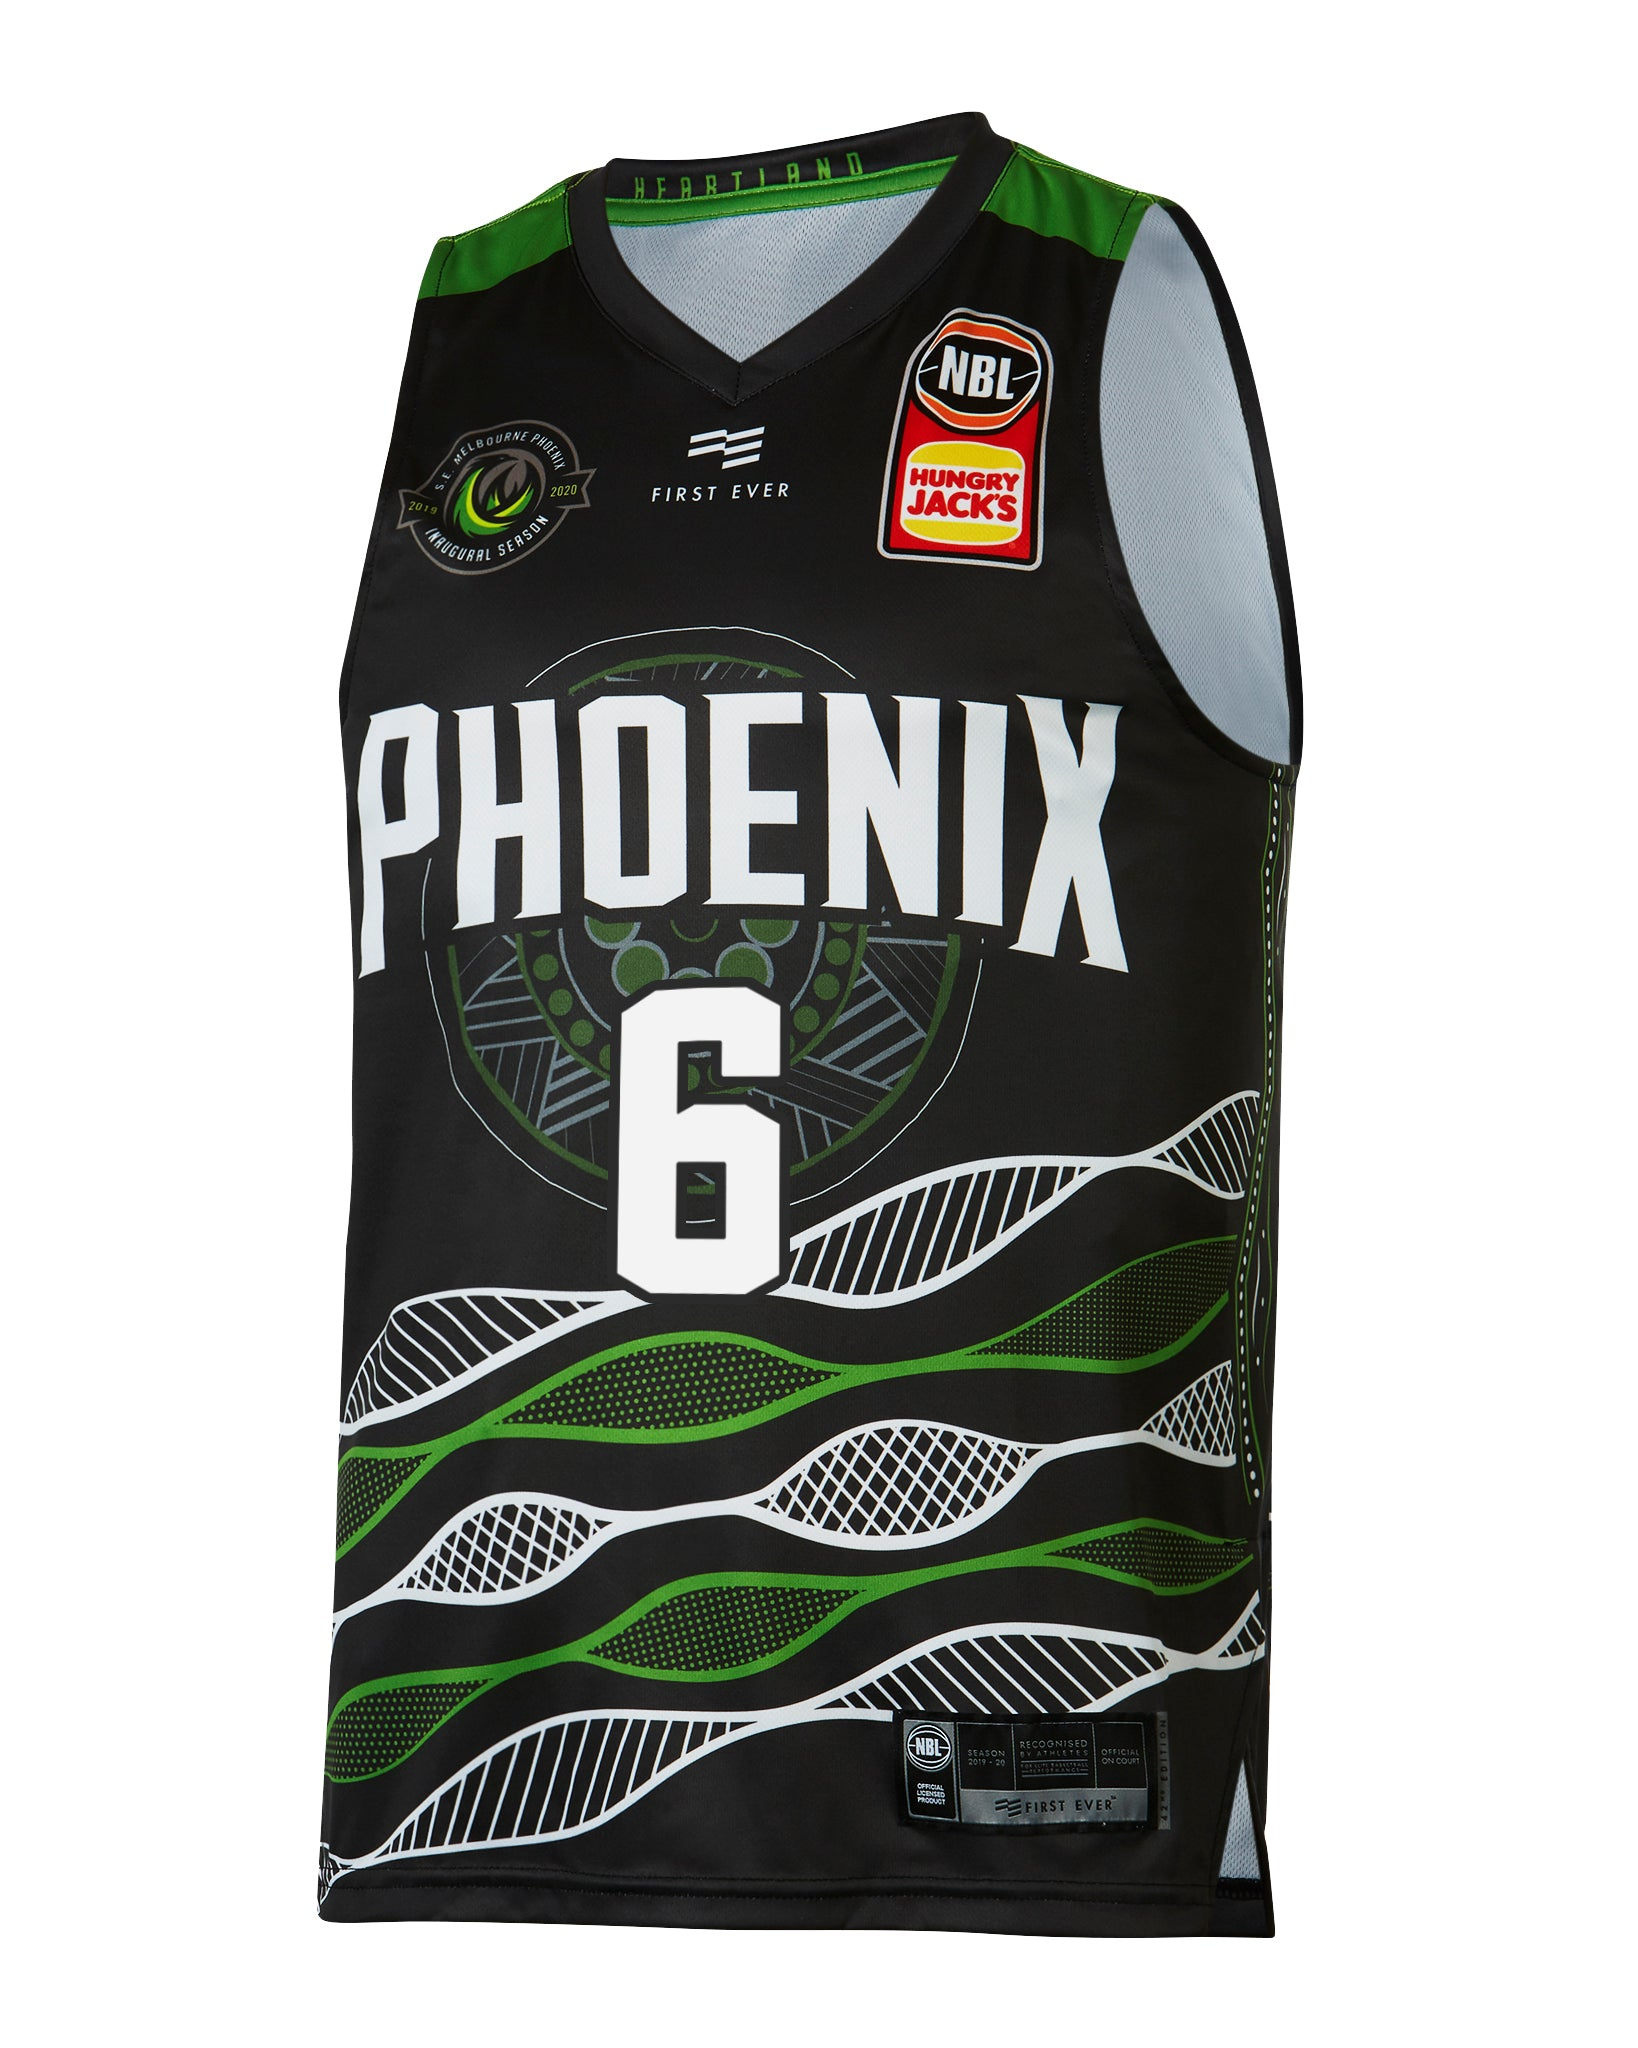 S.E. Melbourne Phoenix 19/20 Indigenous Jersey - Will Hickey